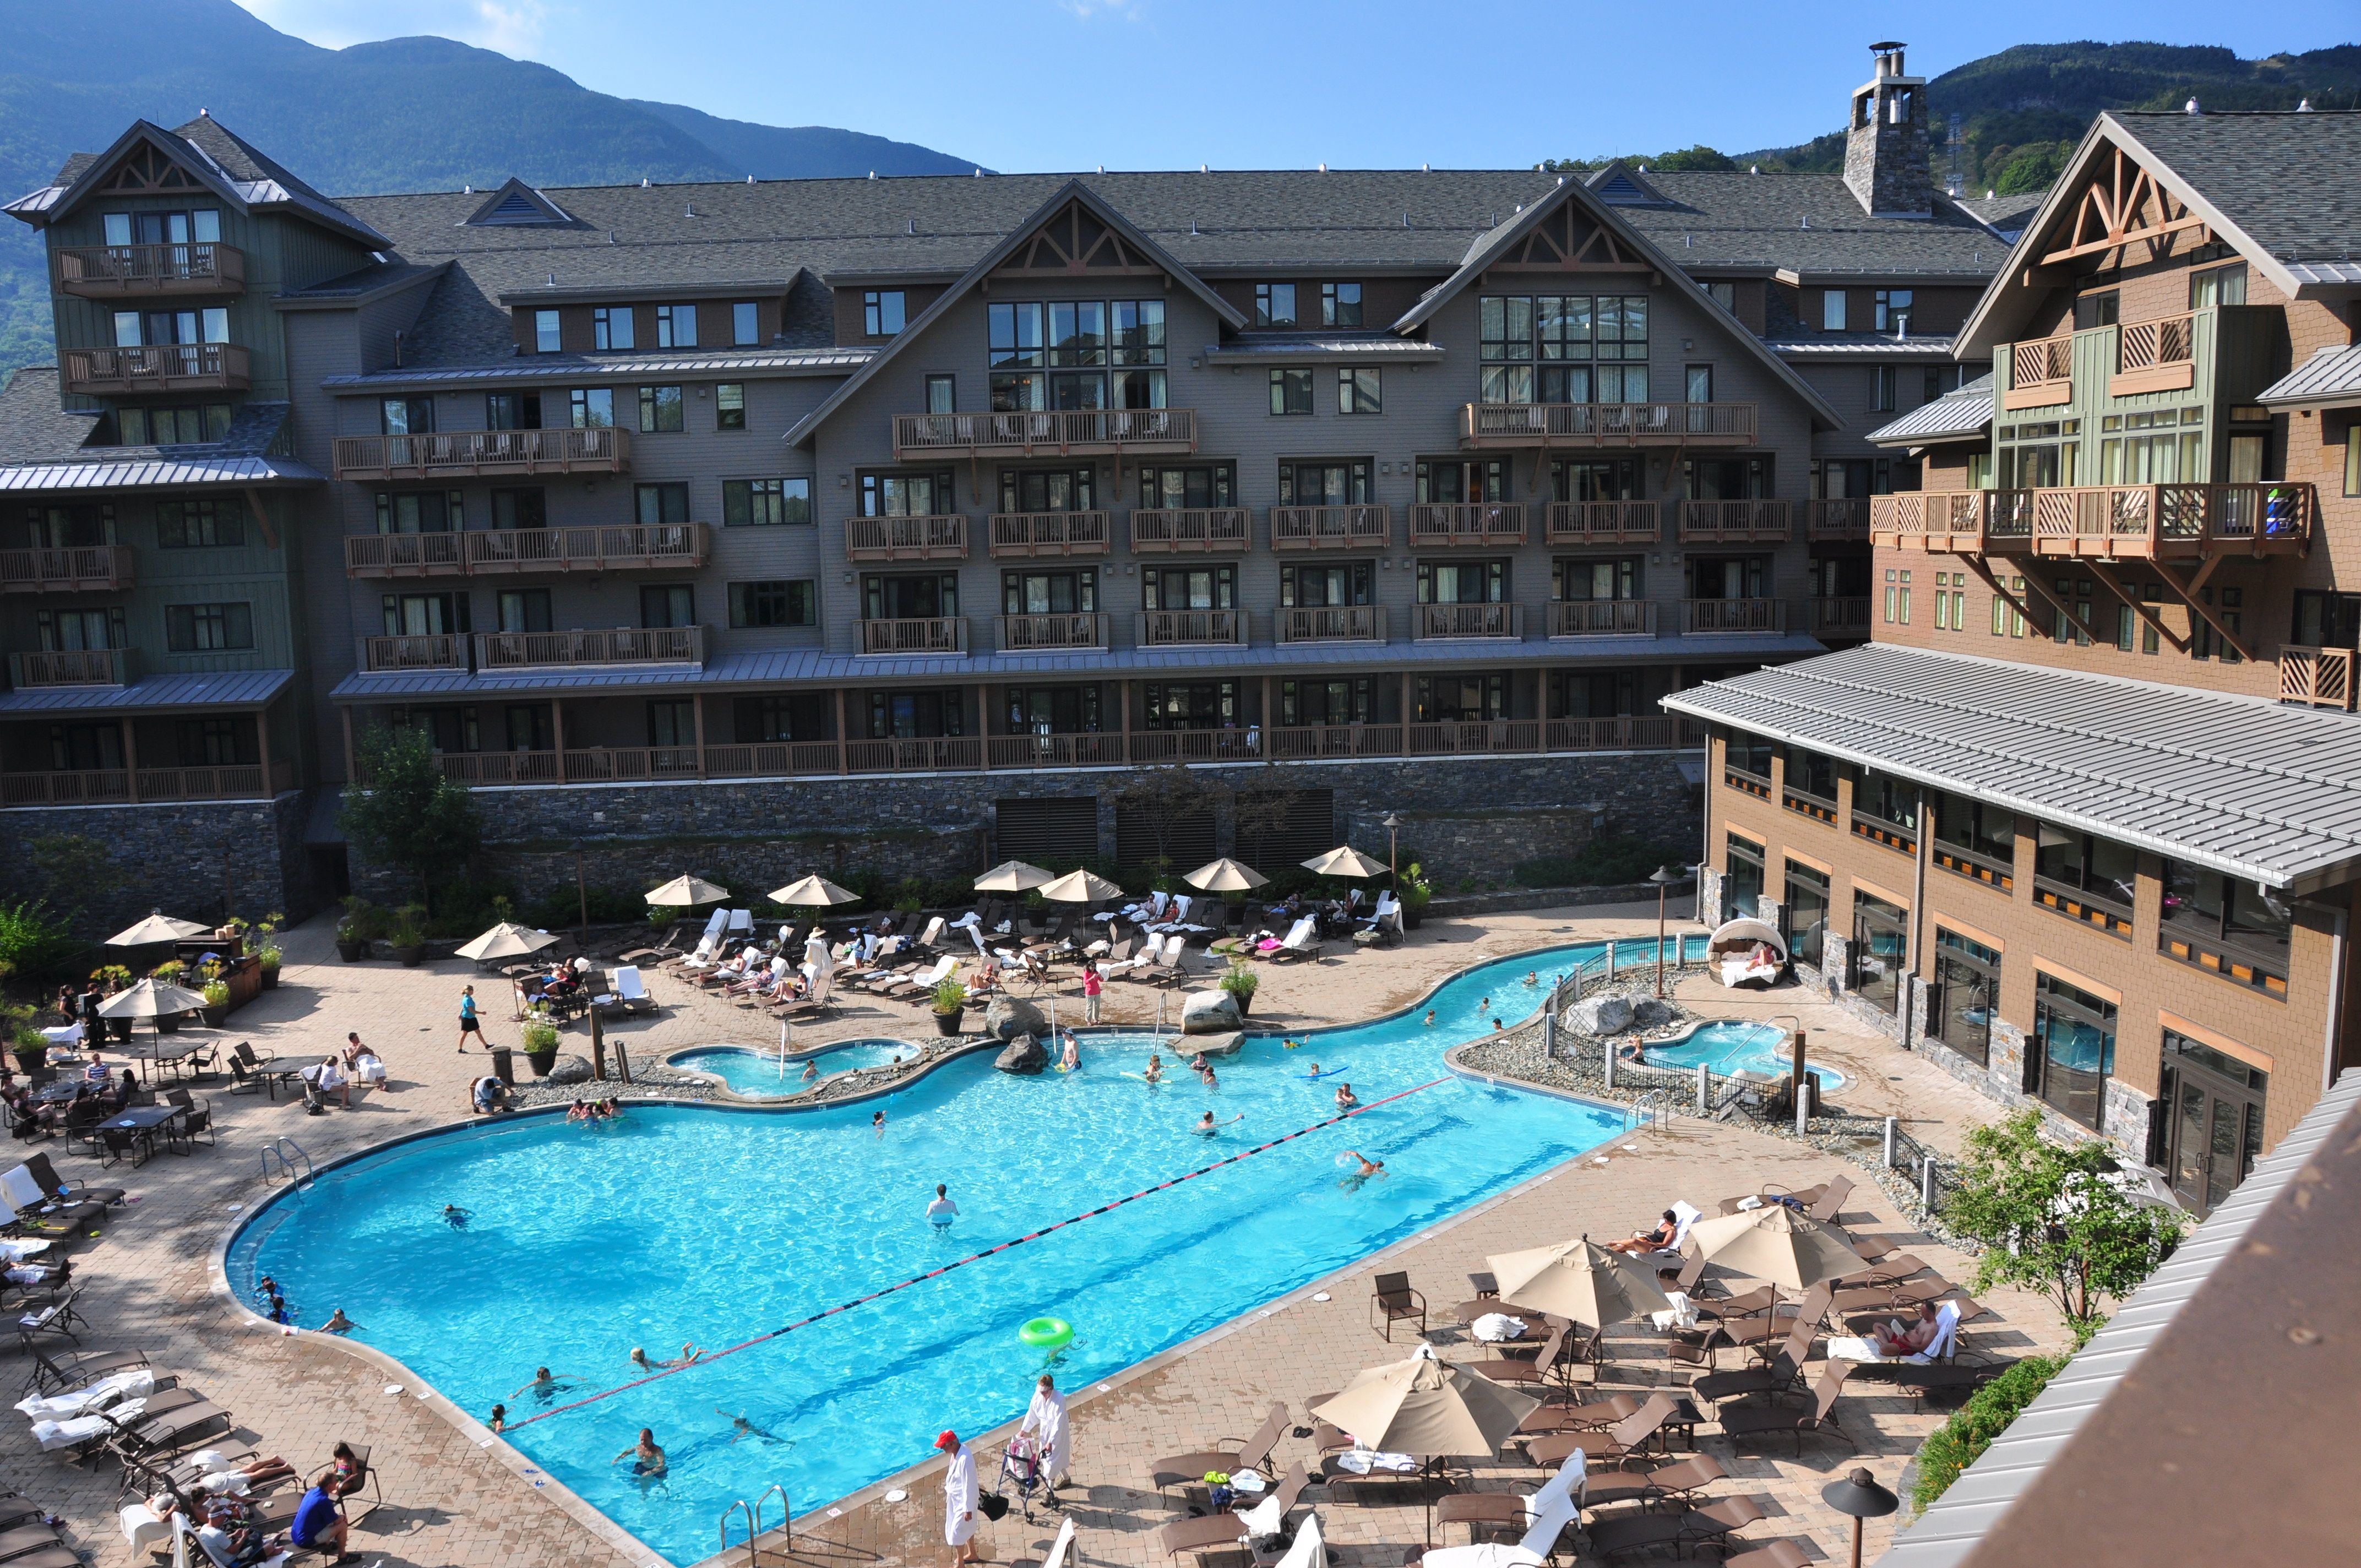 Stowe Mountain Lodge Pool | October road trip 2017 | Pinterest ...